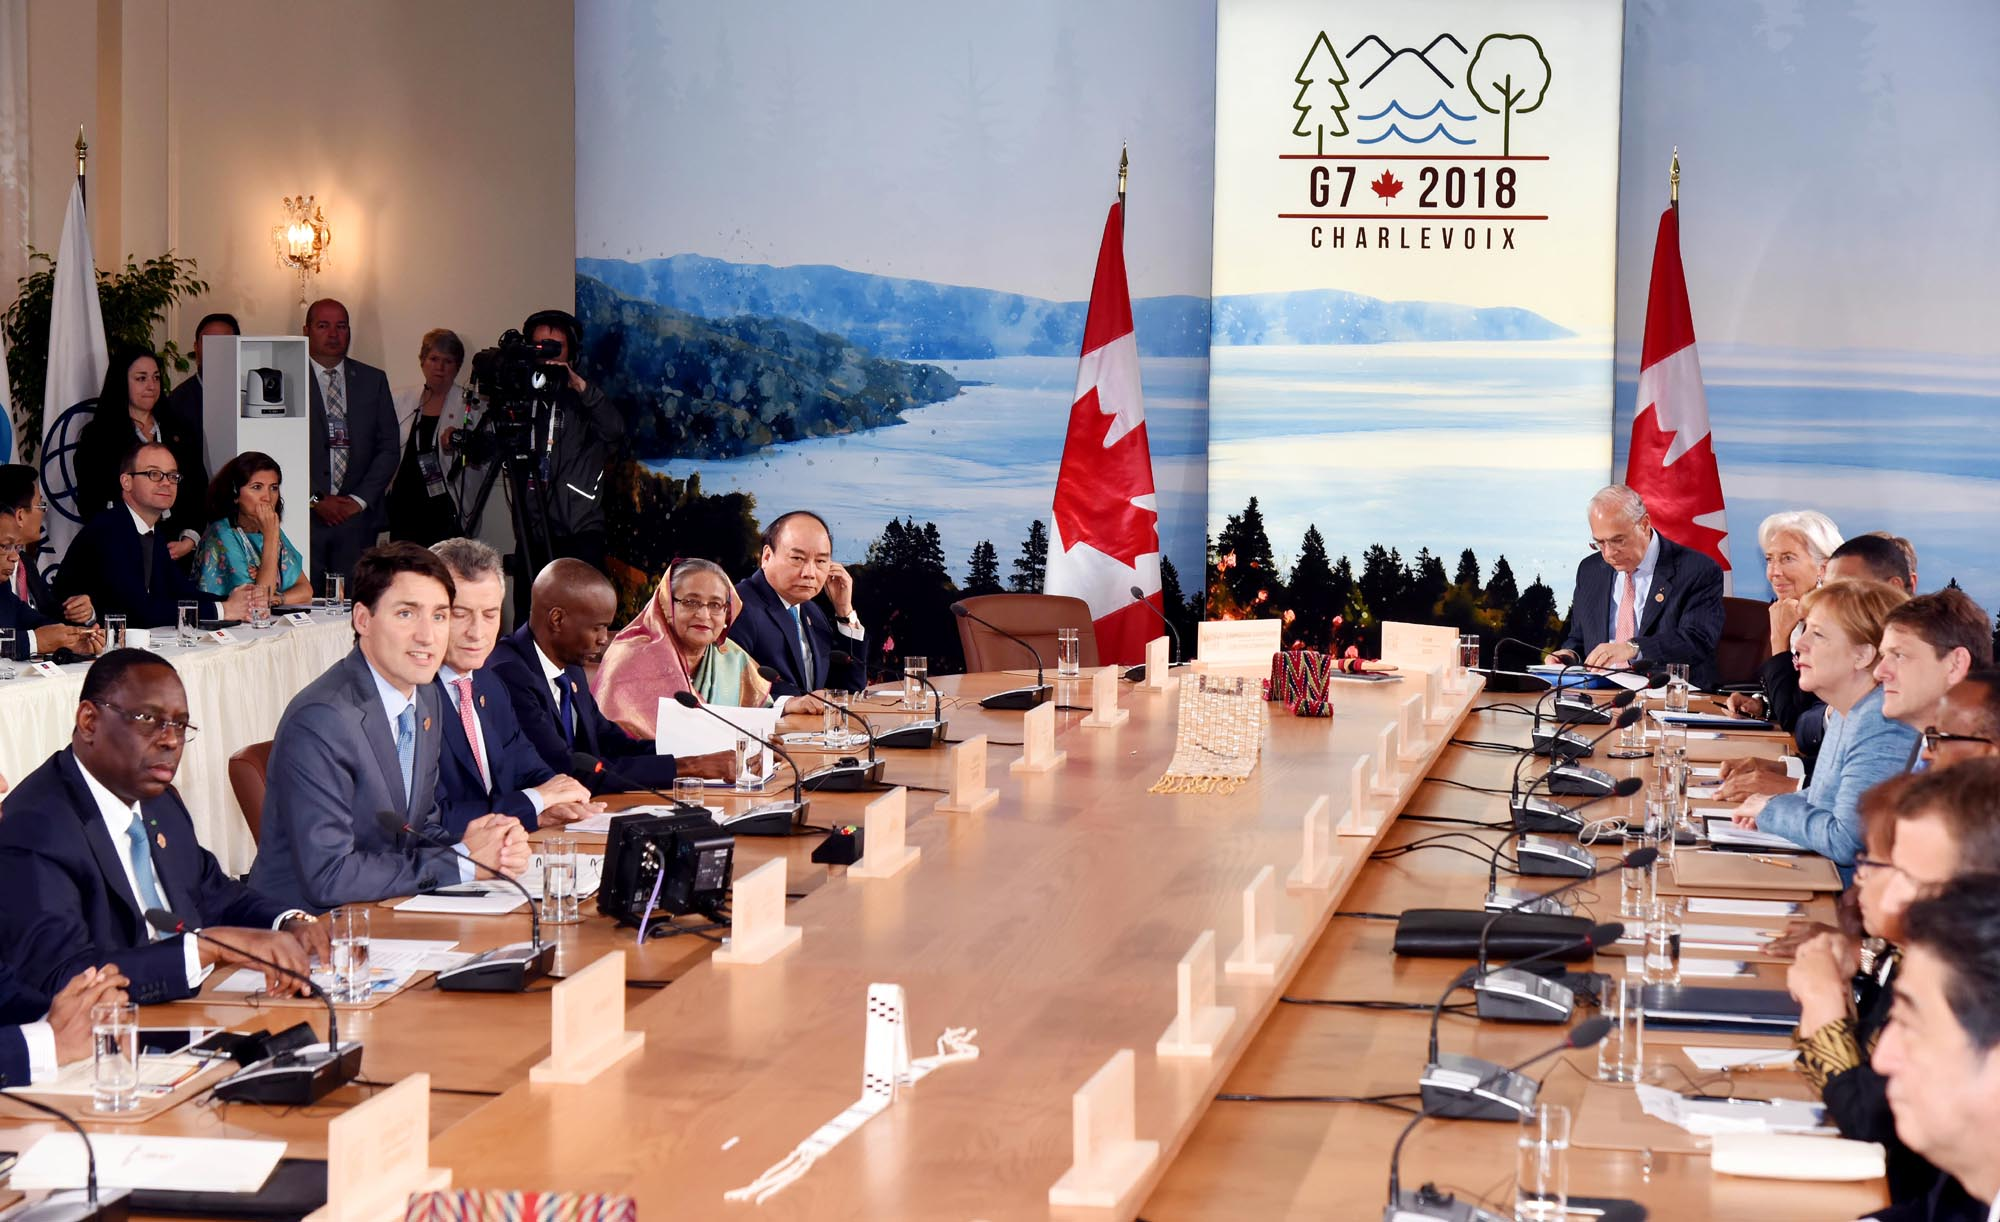 G7 Meeting on May 9, 2018